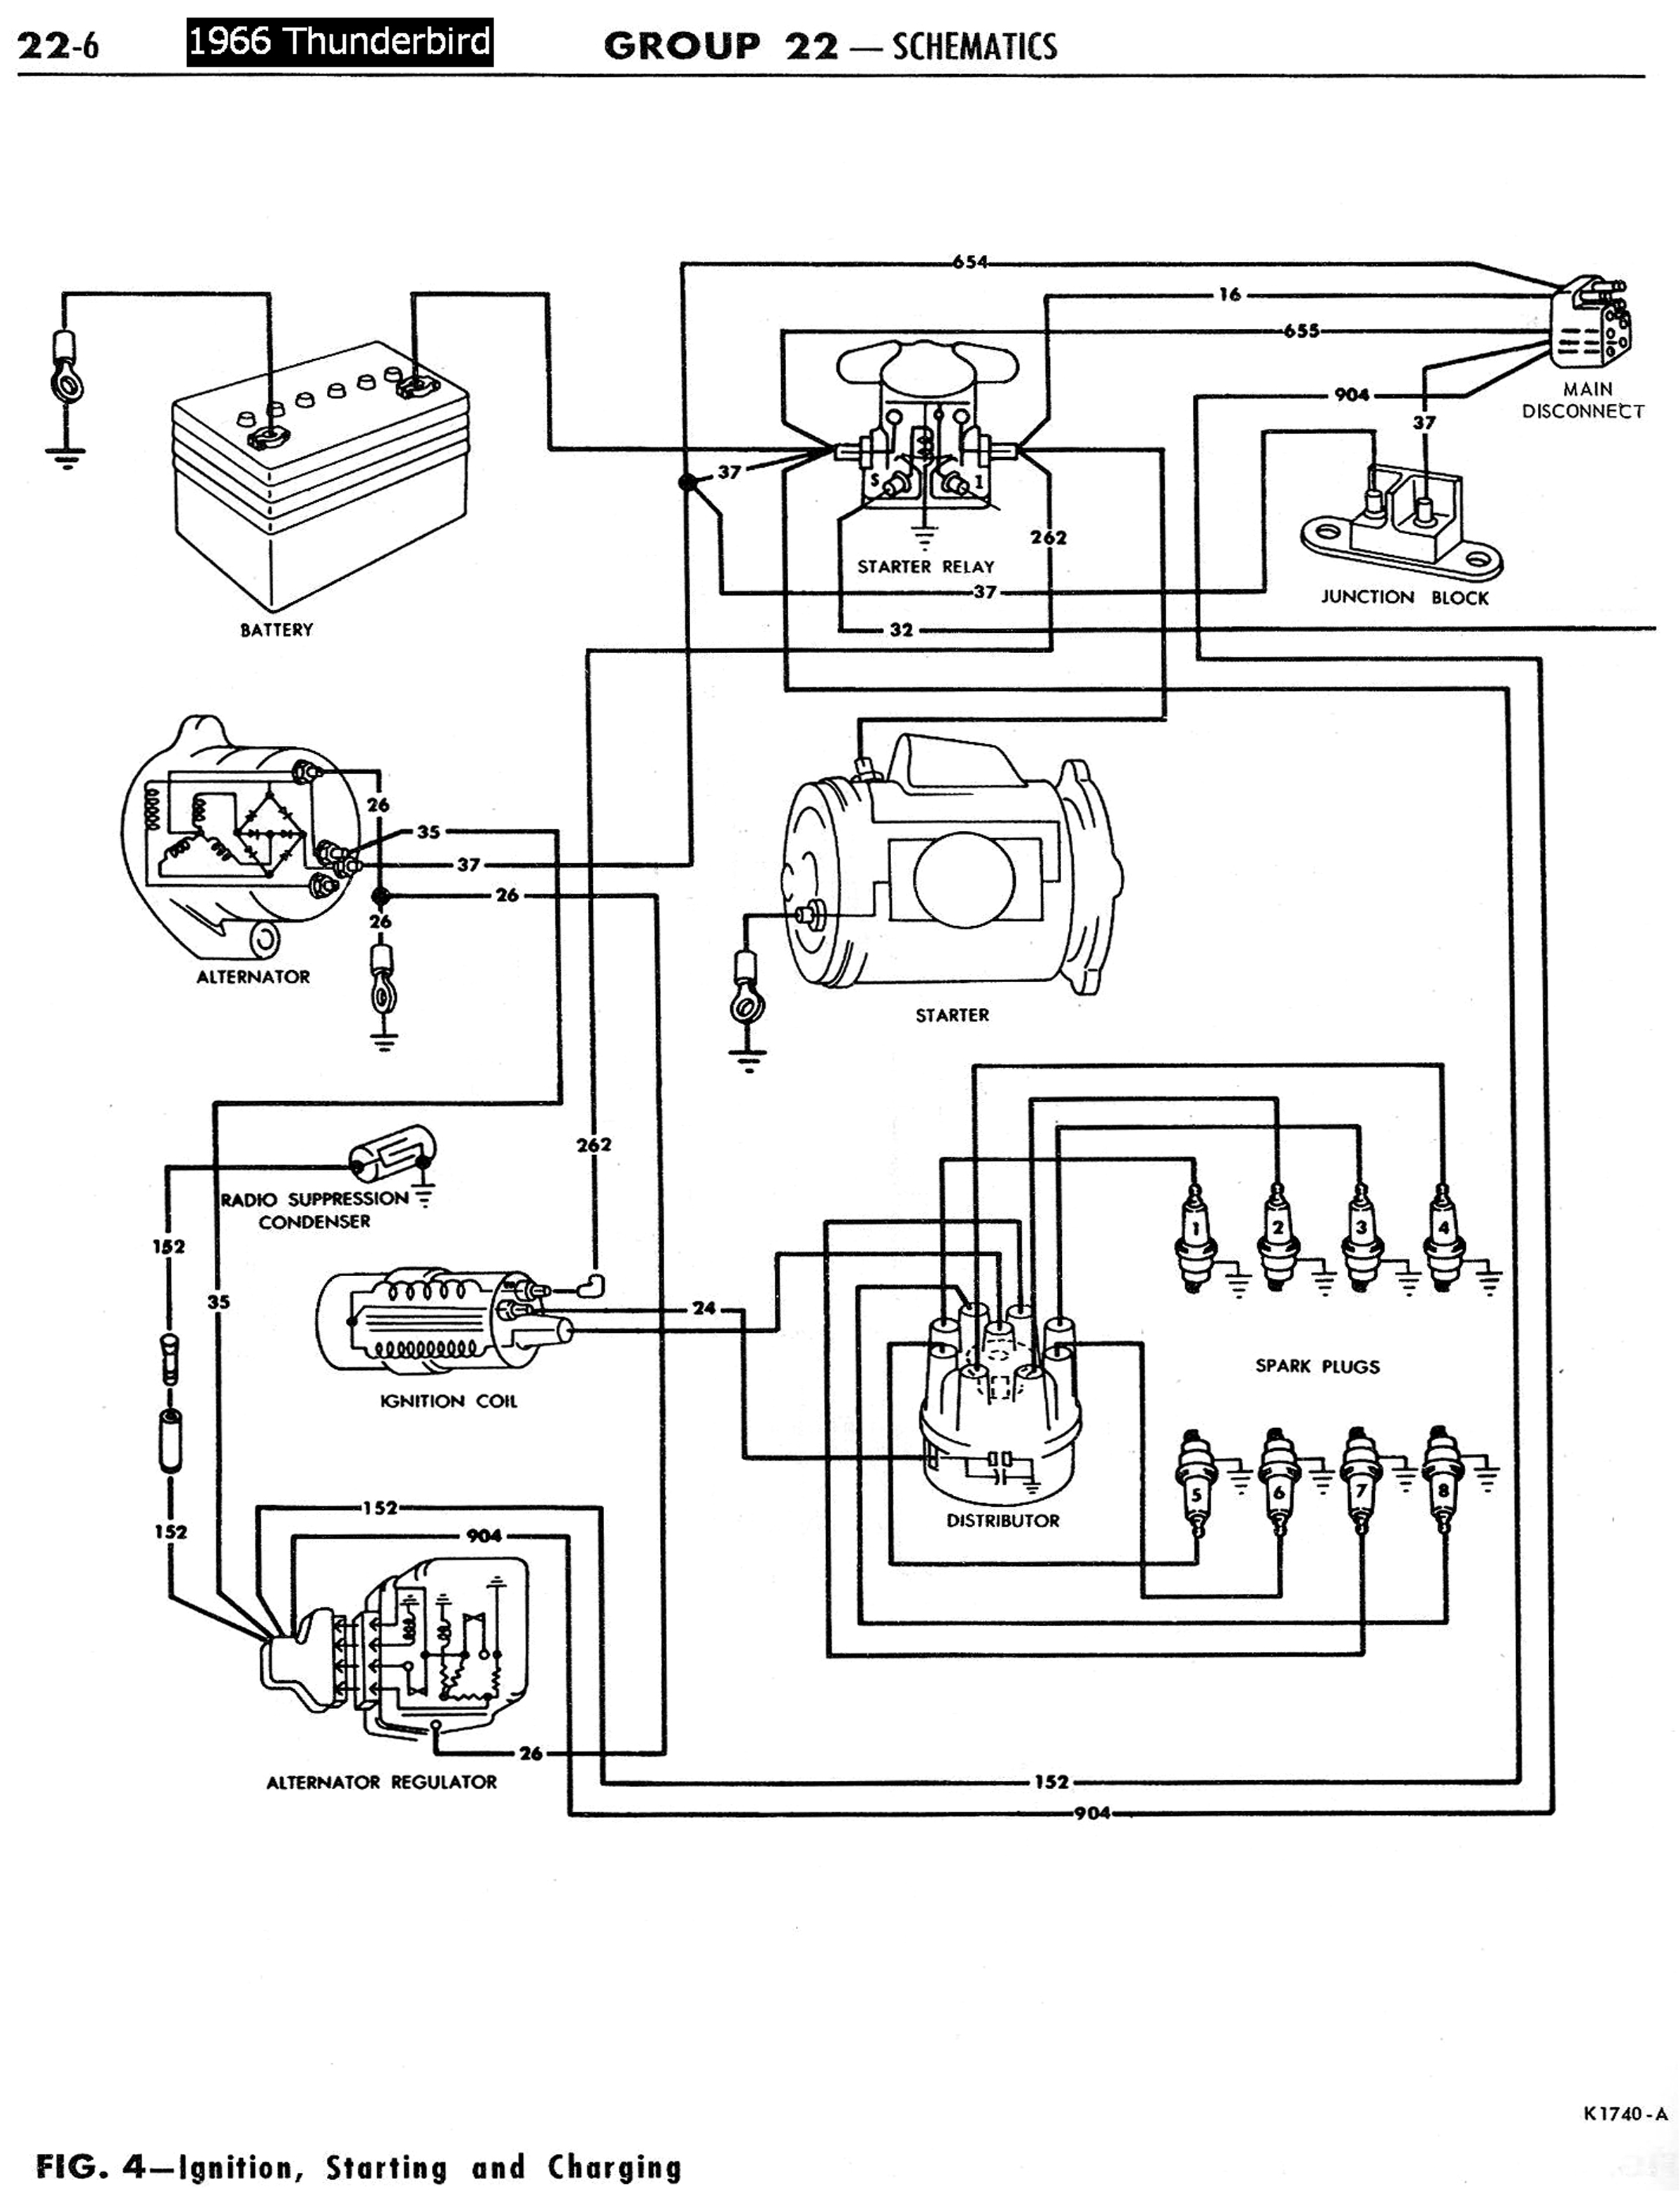 1998 Thunderbird Wiring Diagram Great Design Of 1966 Engine 1955 Ford 36 1994